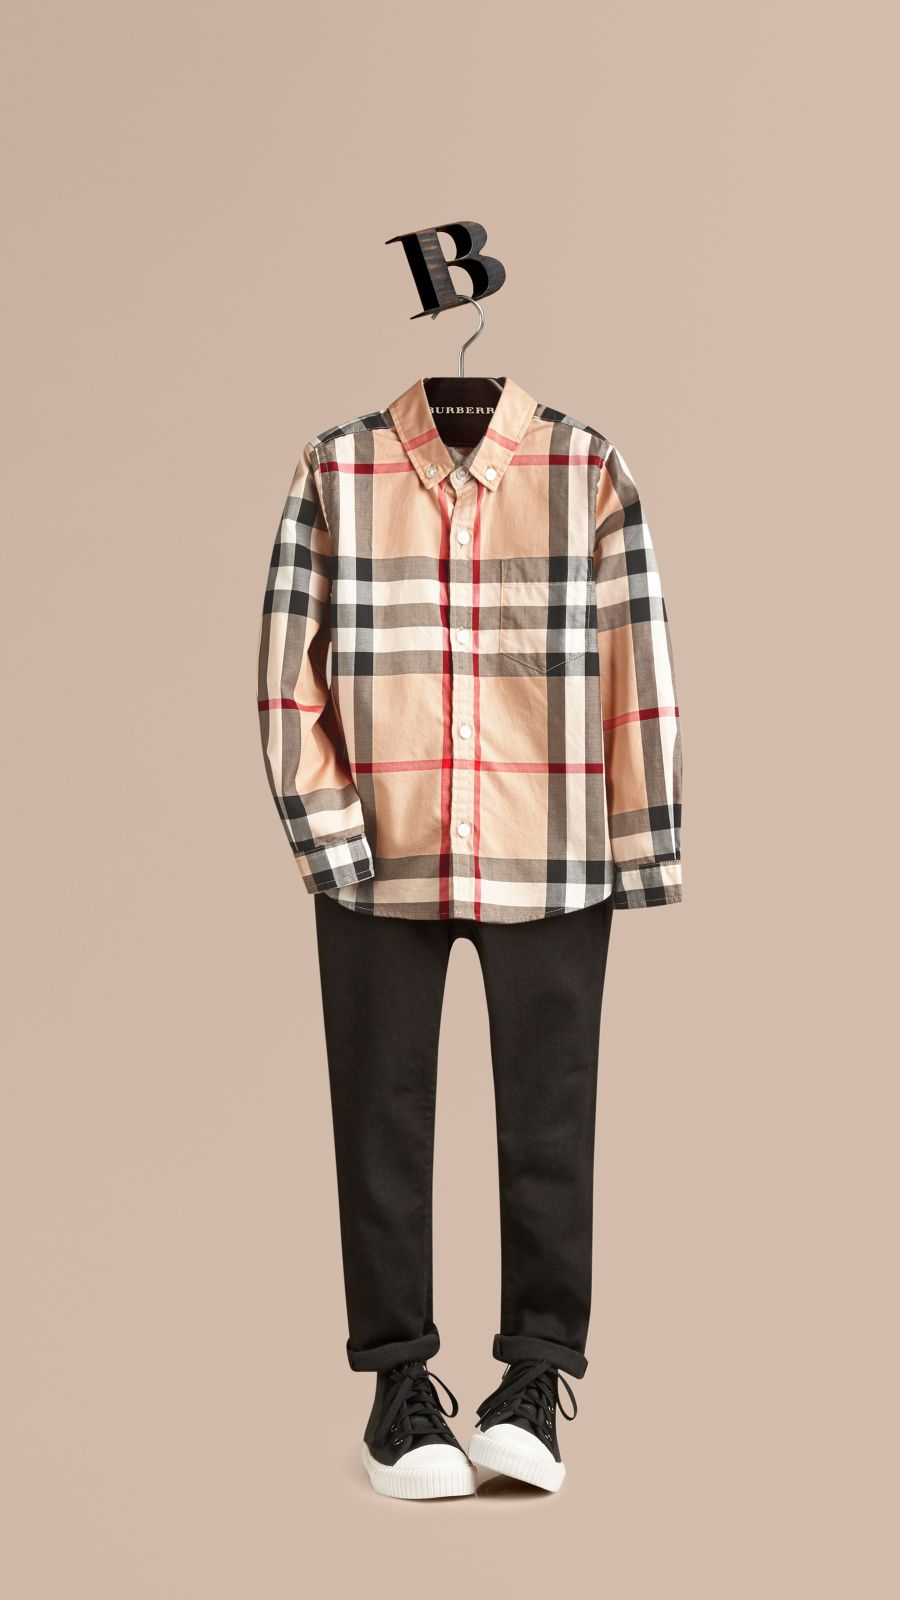 New classic Check Cotton Button-Down Shirt - Image 1